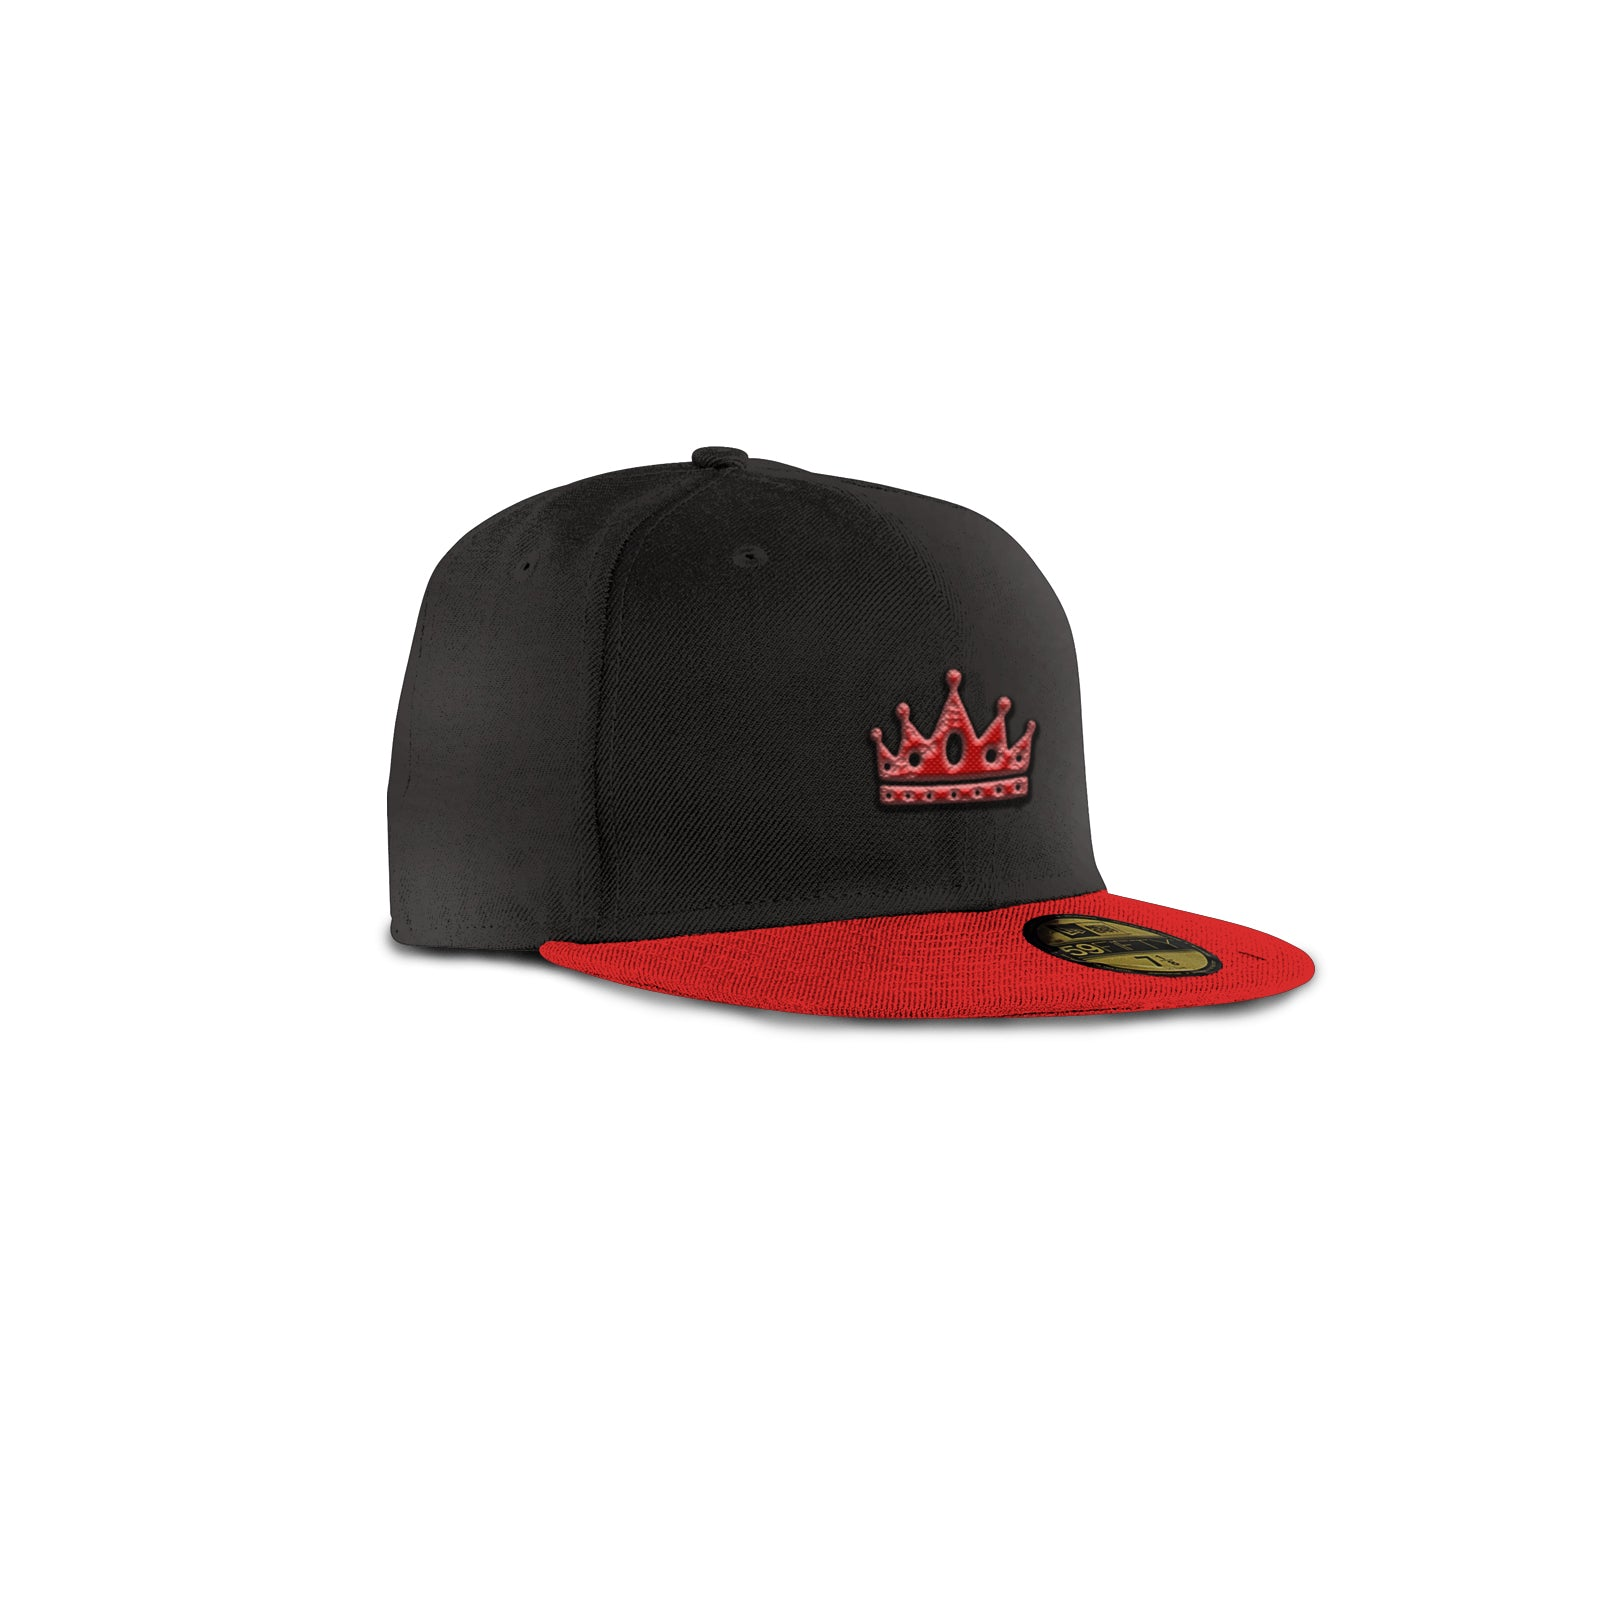 "G Series ""King Crown"" Hats"